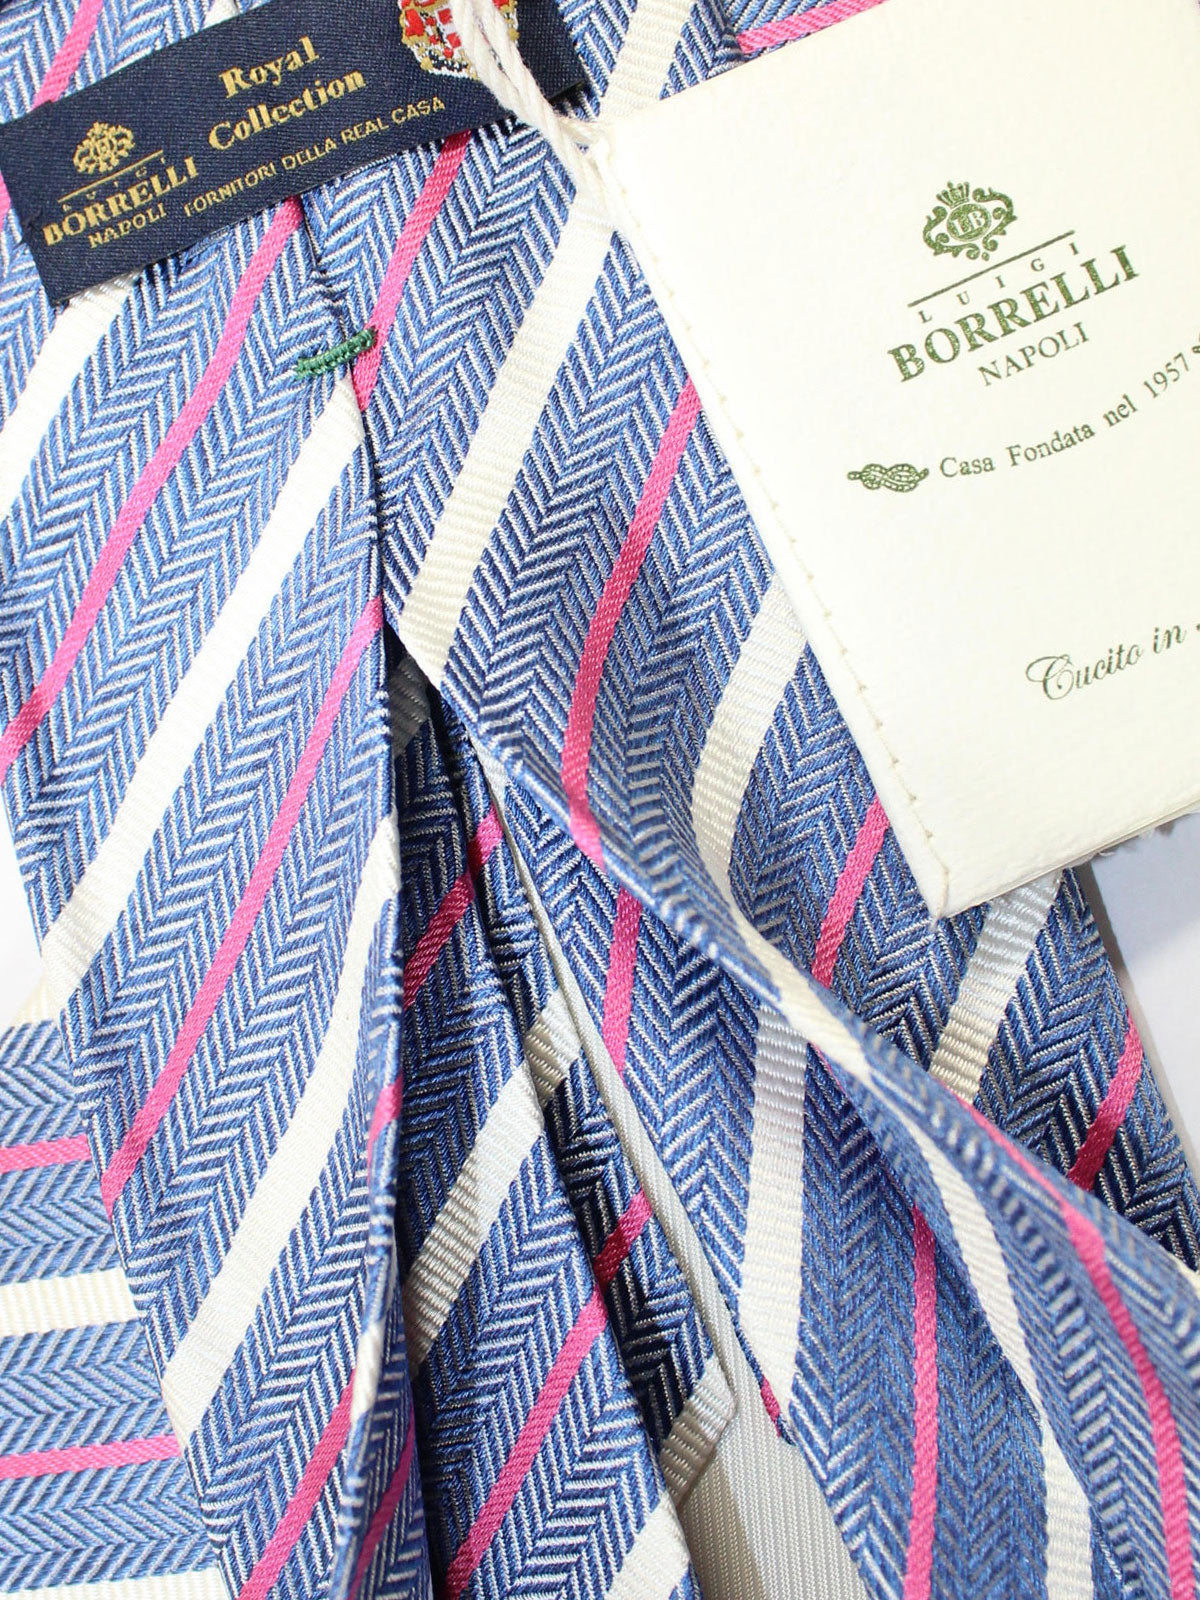 Luigi Borrelli 11 Fold Tie Navy White Silver Pink Stripes ROYAL COLLECTION Elevenfold Necktie